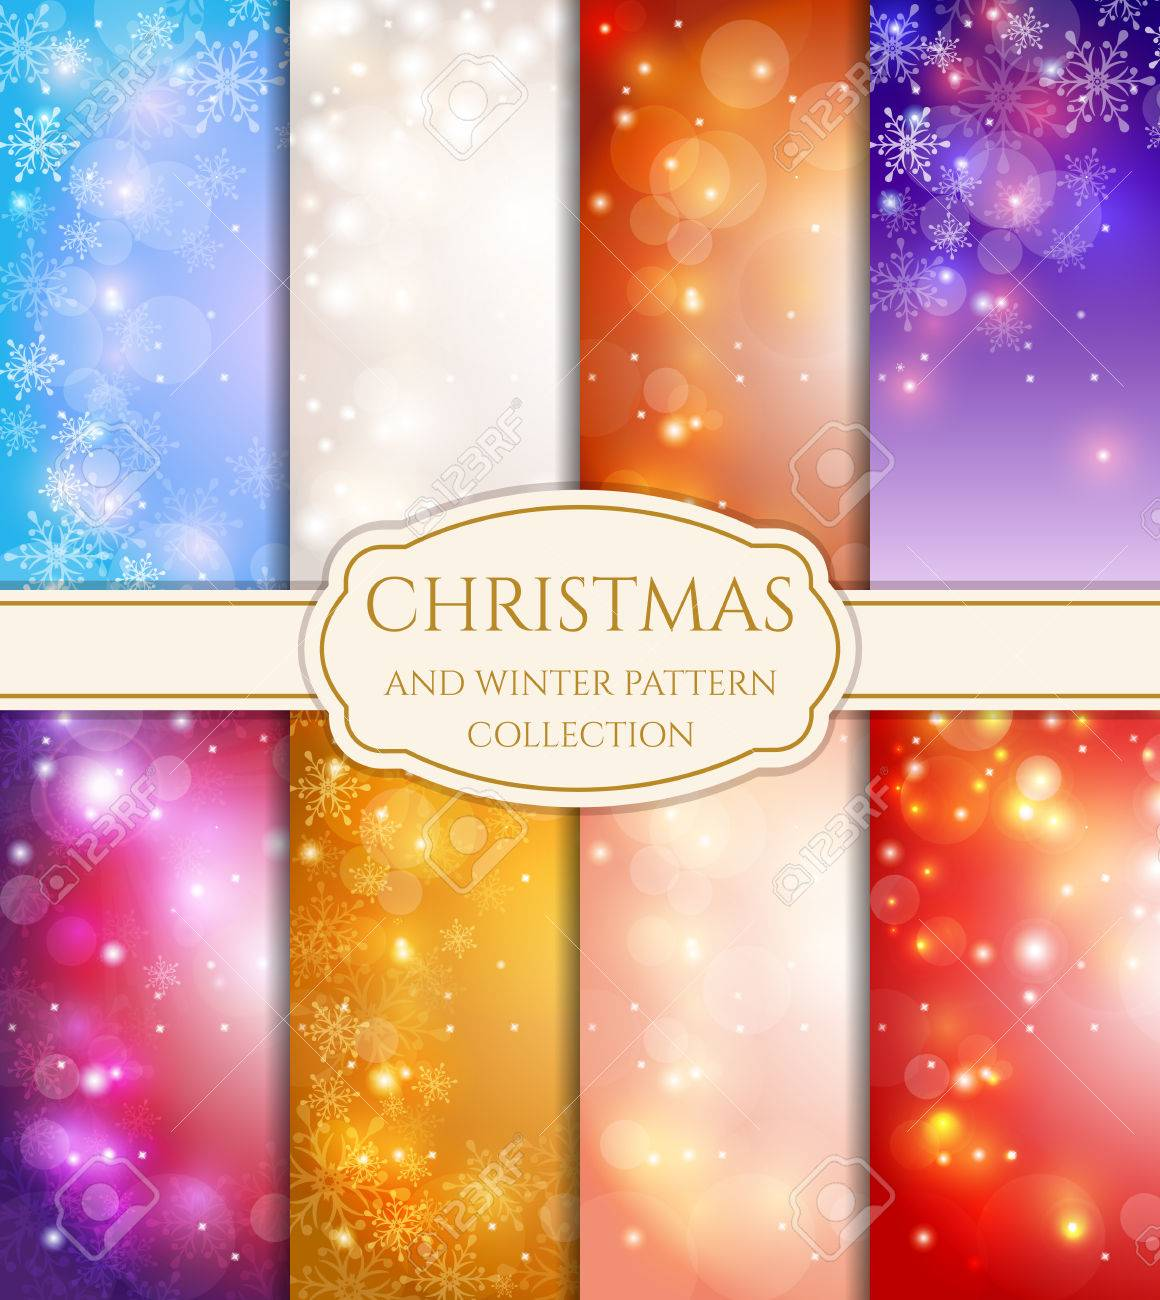 Merry Christmas and Happy New Year! Set of winter and holidays backgrounds with snowflakes, bokeh and space for text. Festive cards of different colors. Vector collection. - 49542010